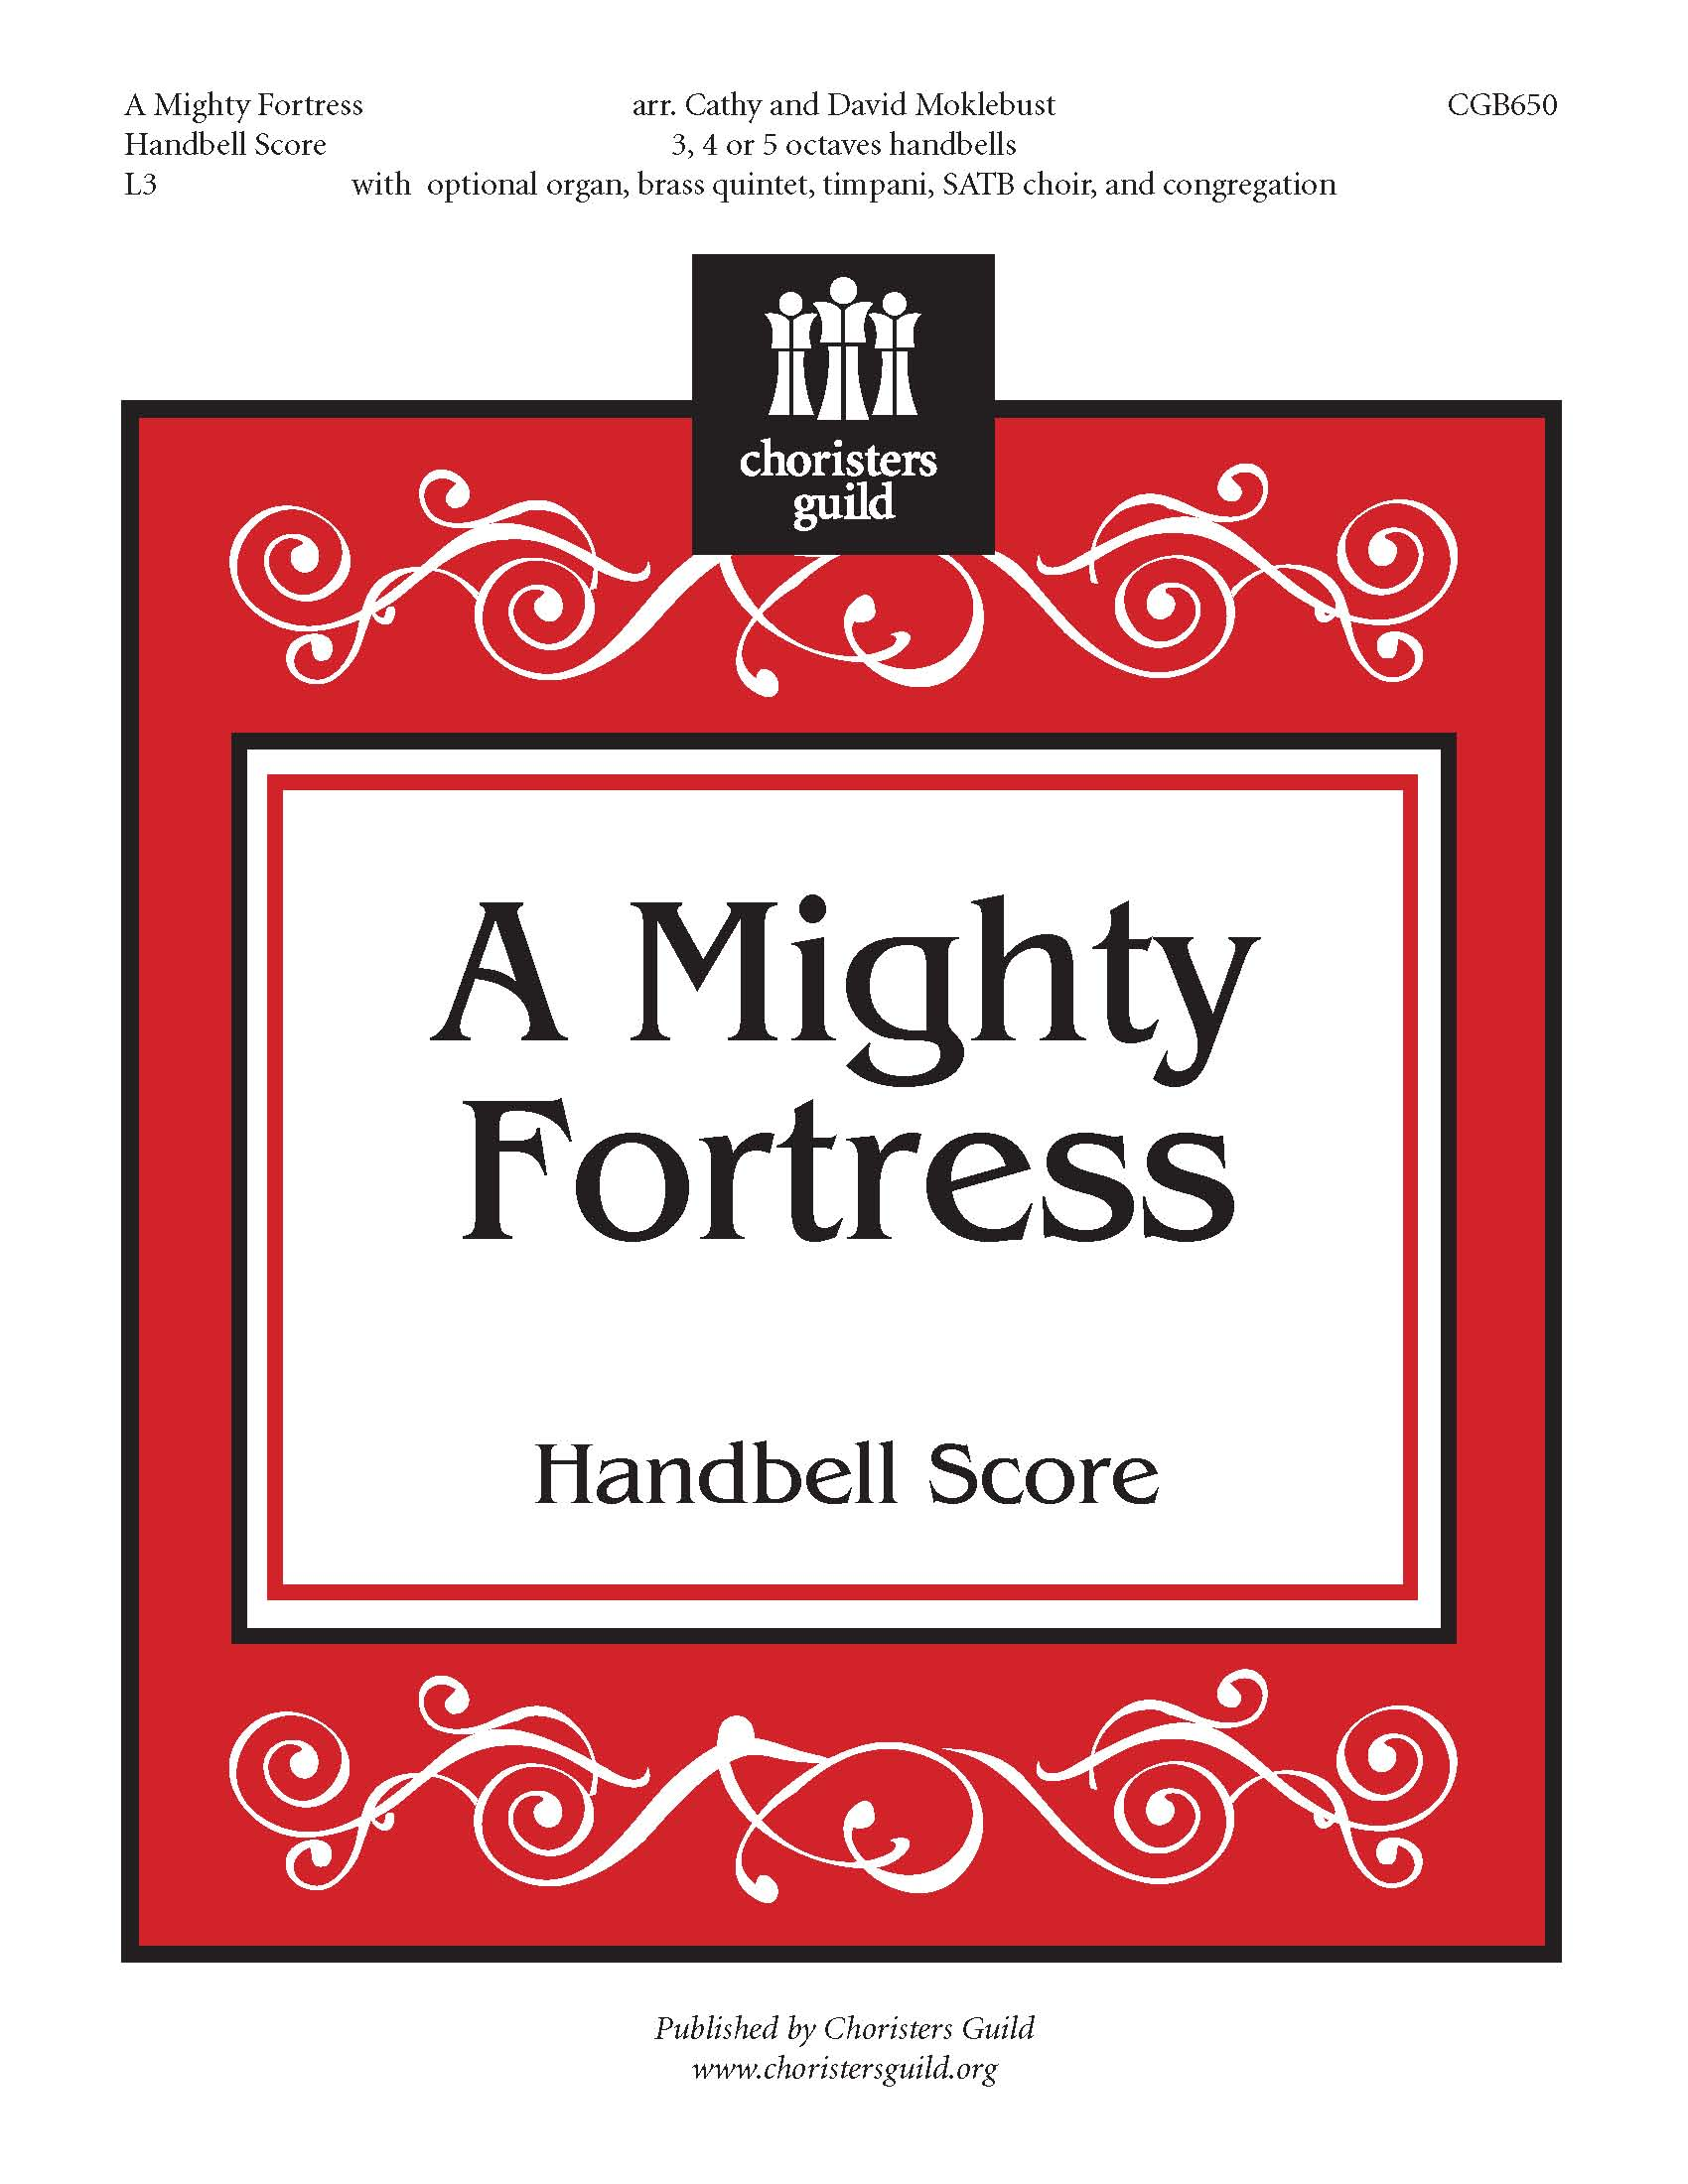 A Mighty Fortress Handbell Score